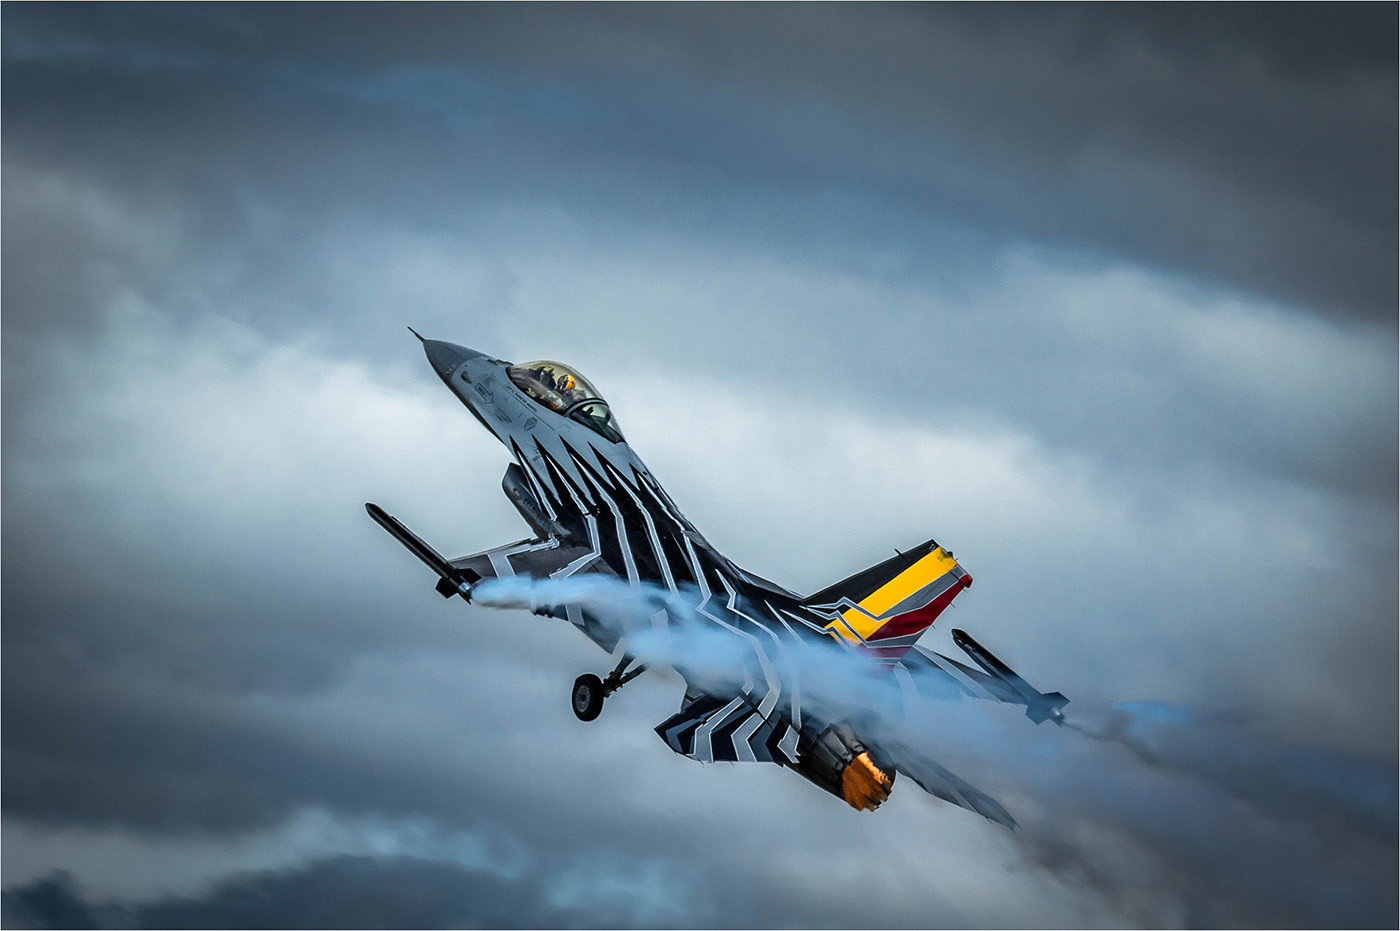 18 F16 ON TAKE OFF by David Peek